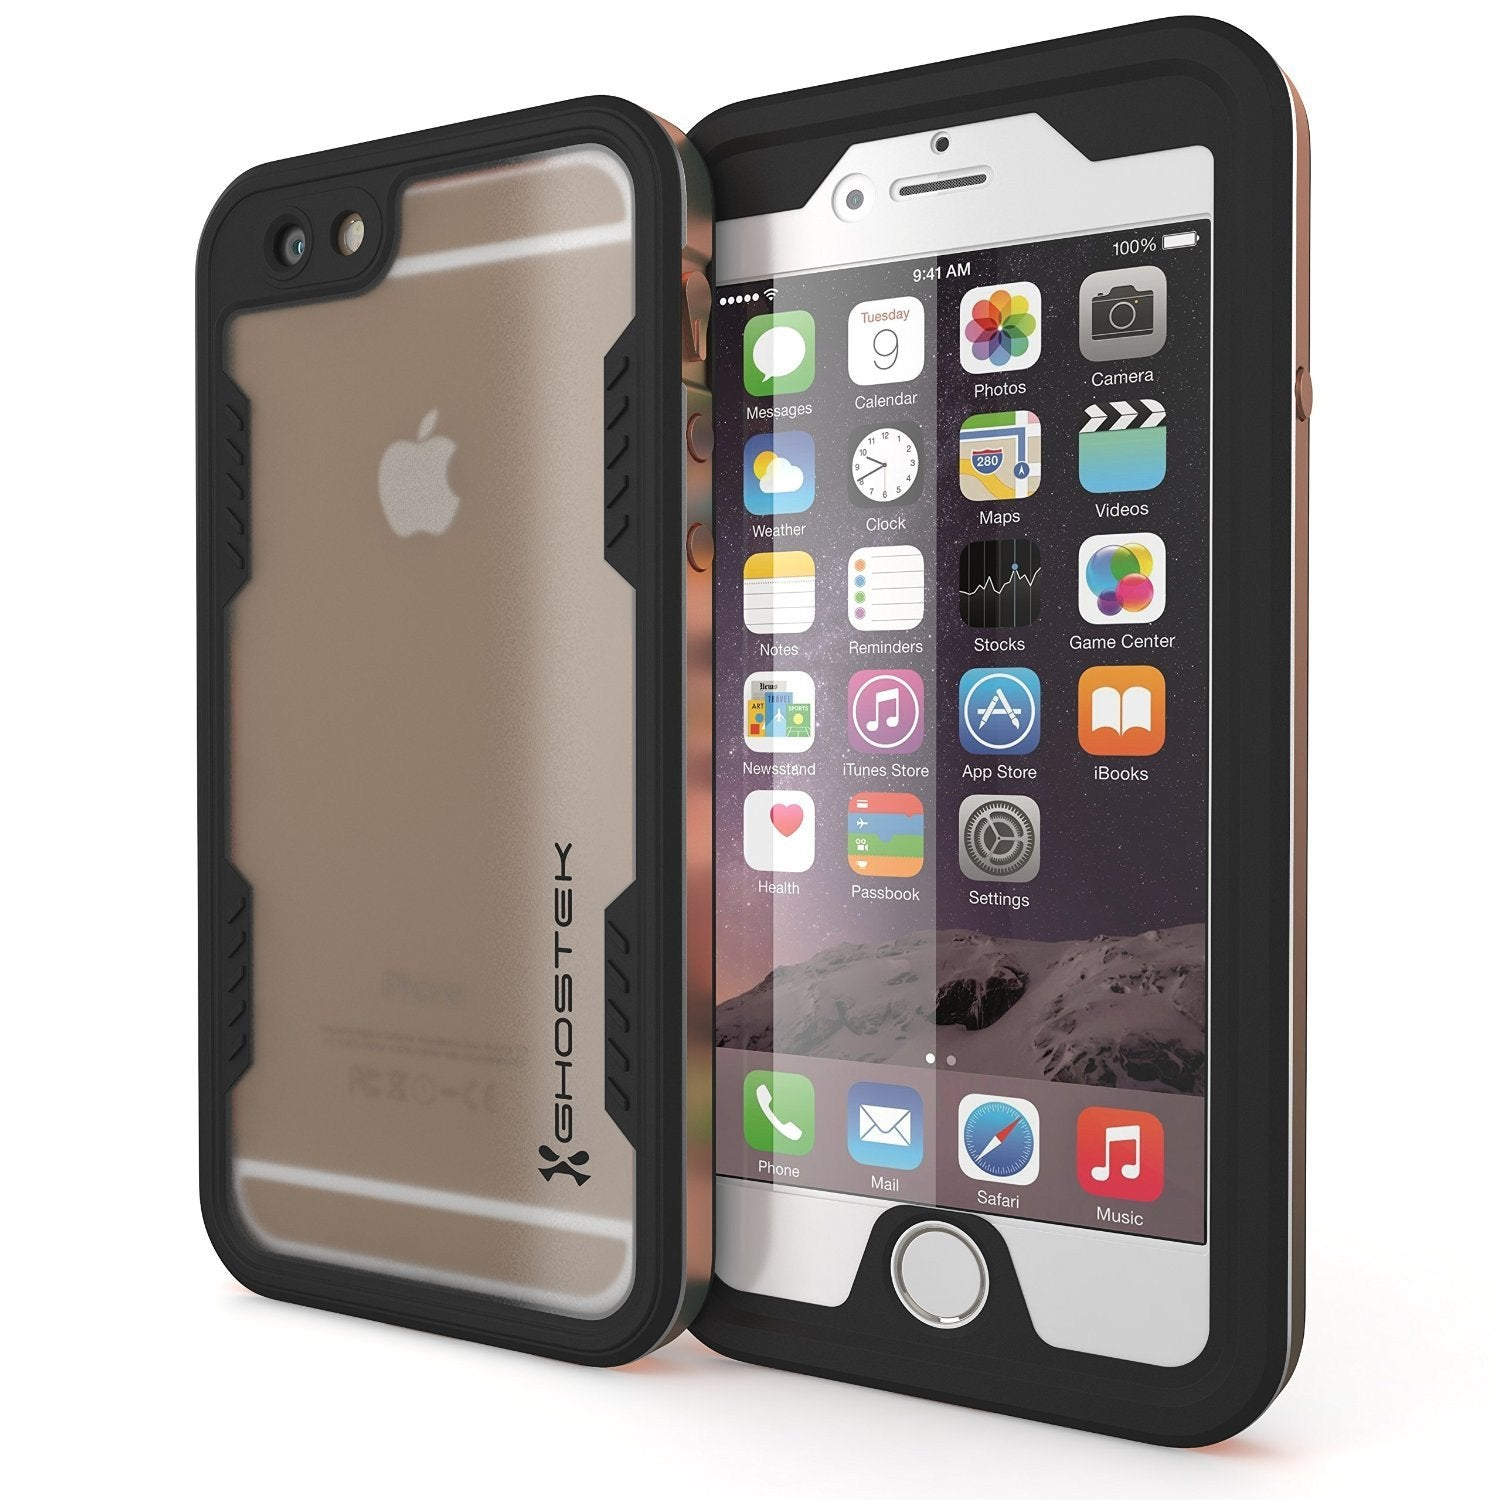 iPhone 6S+/6+ Plus Waterproof Case Ghostek Atomic 2.0 Gold w/ Attached Screen Protector | Slim - PunkCase NZ